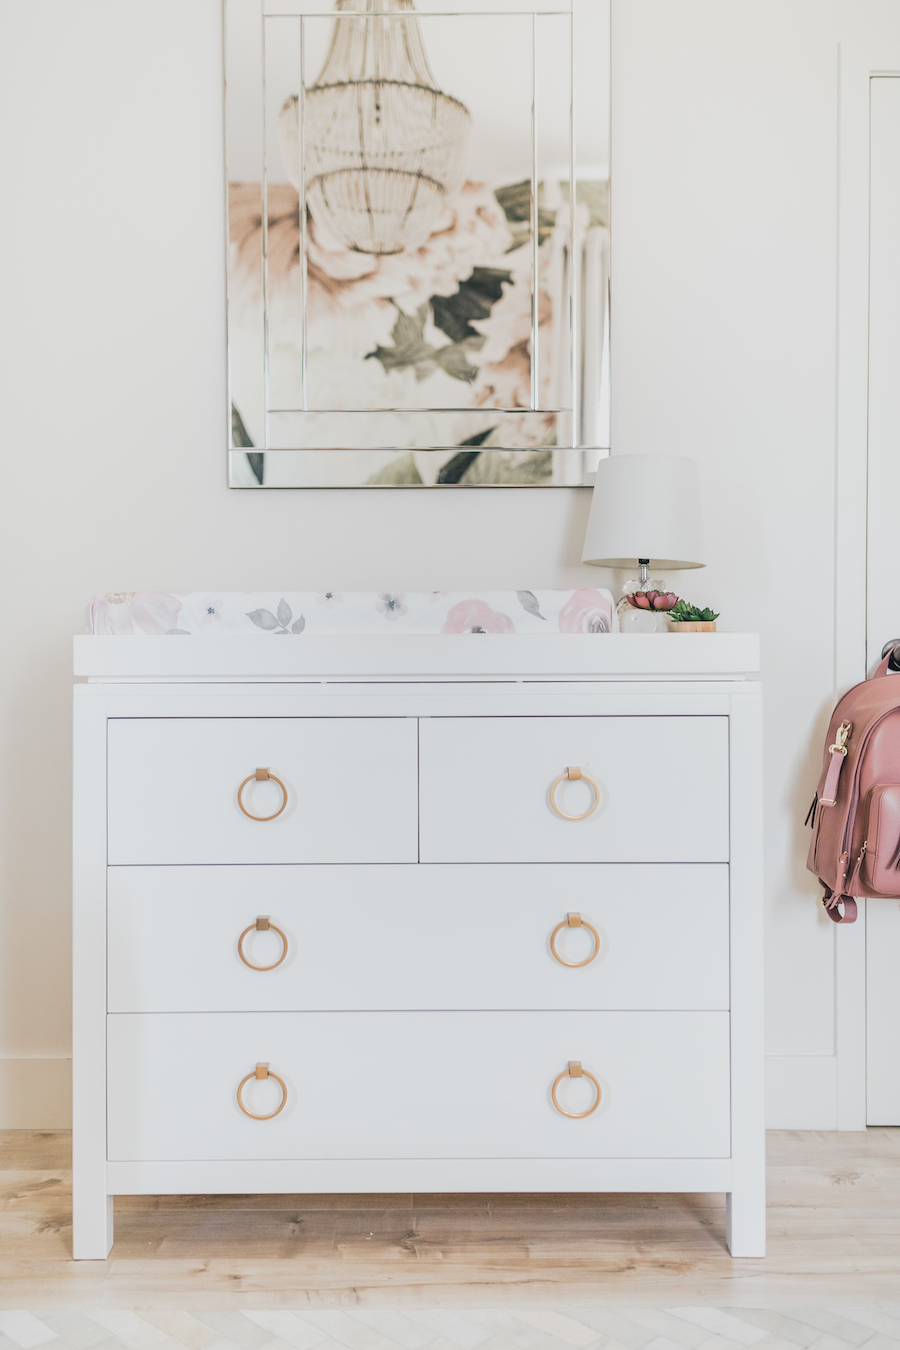 Jessi Malay's Floral Nursery | Little Crown Interiors